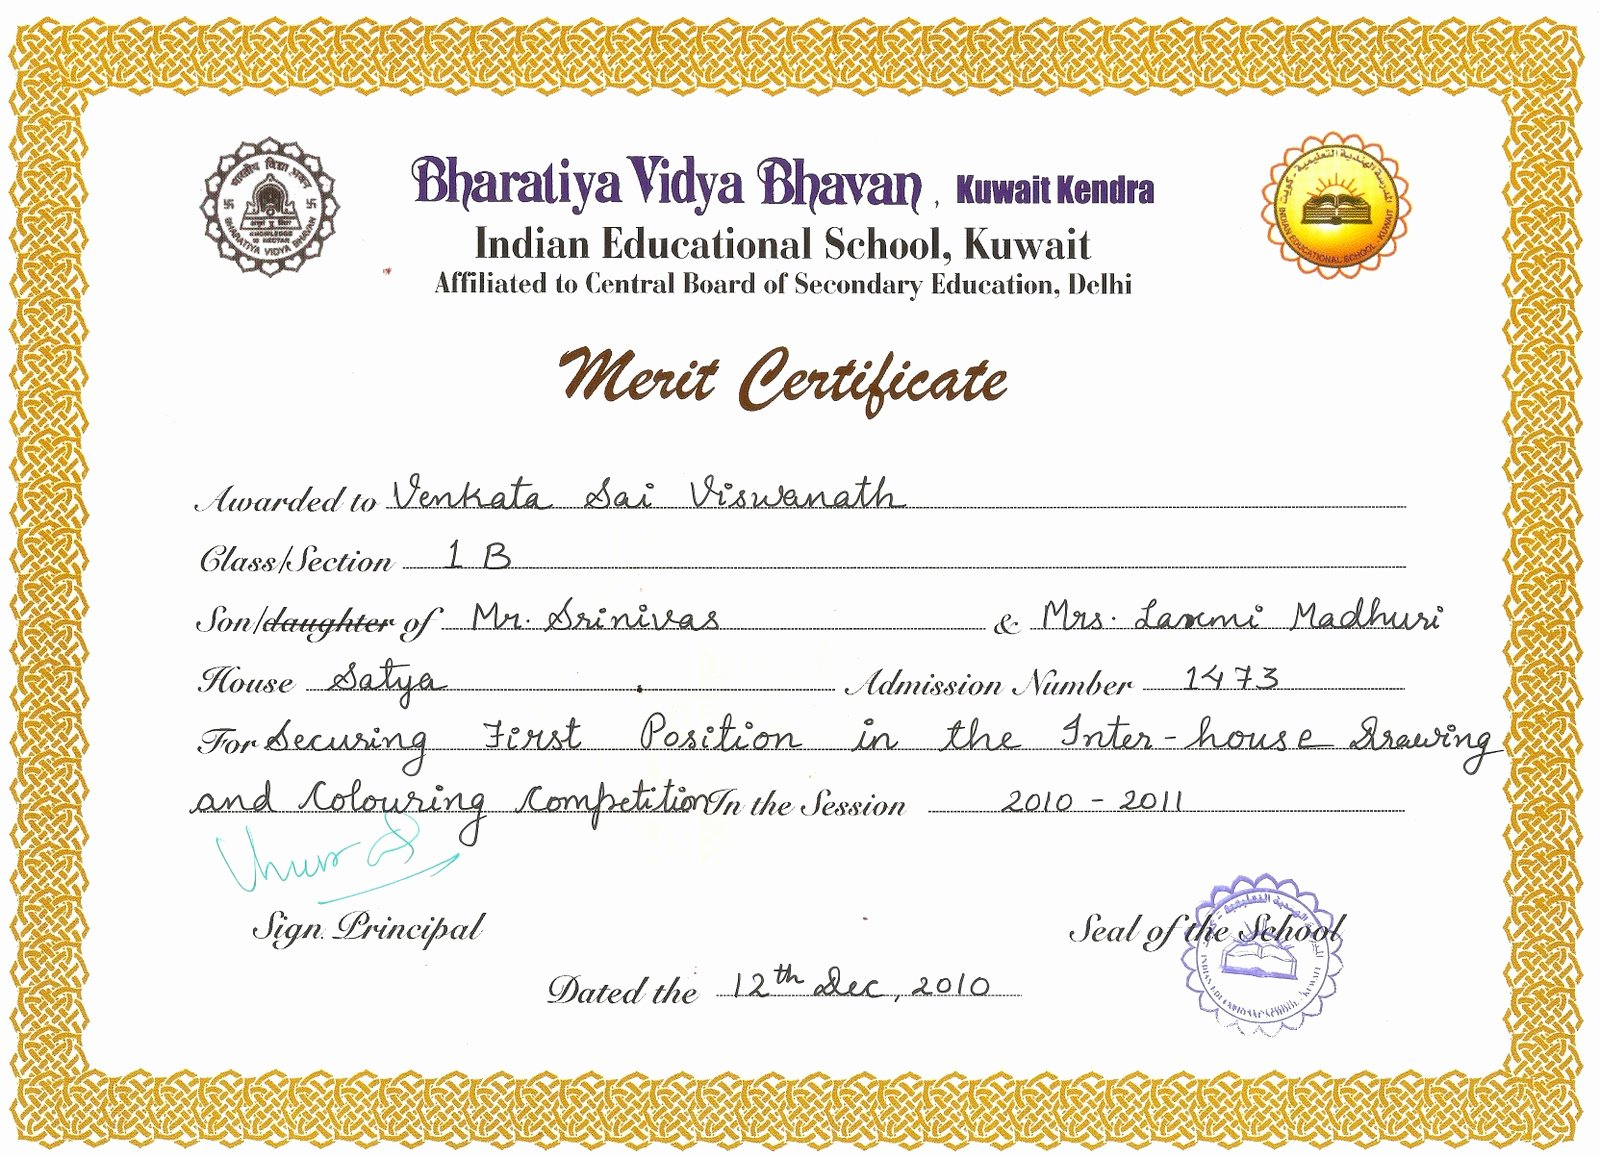 Certificate Of Merit Sample Luxury Merit Certificate Samples Cake Ideas and Designs